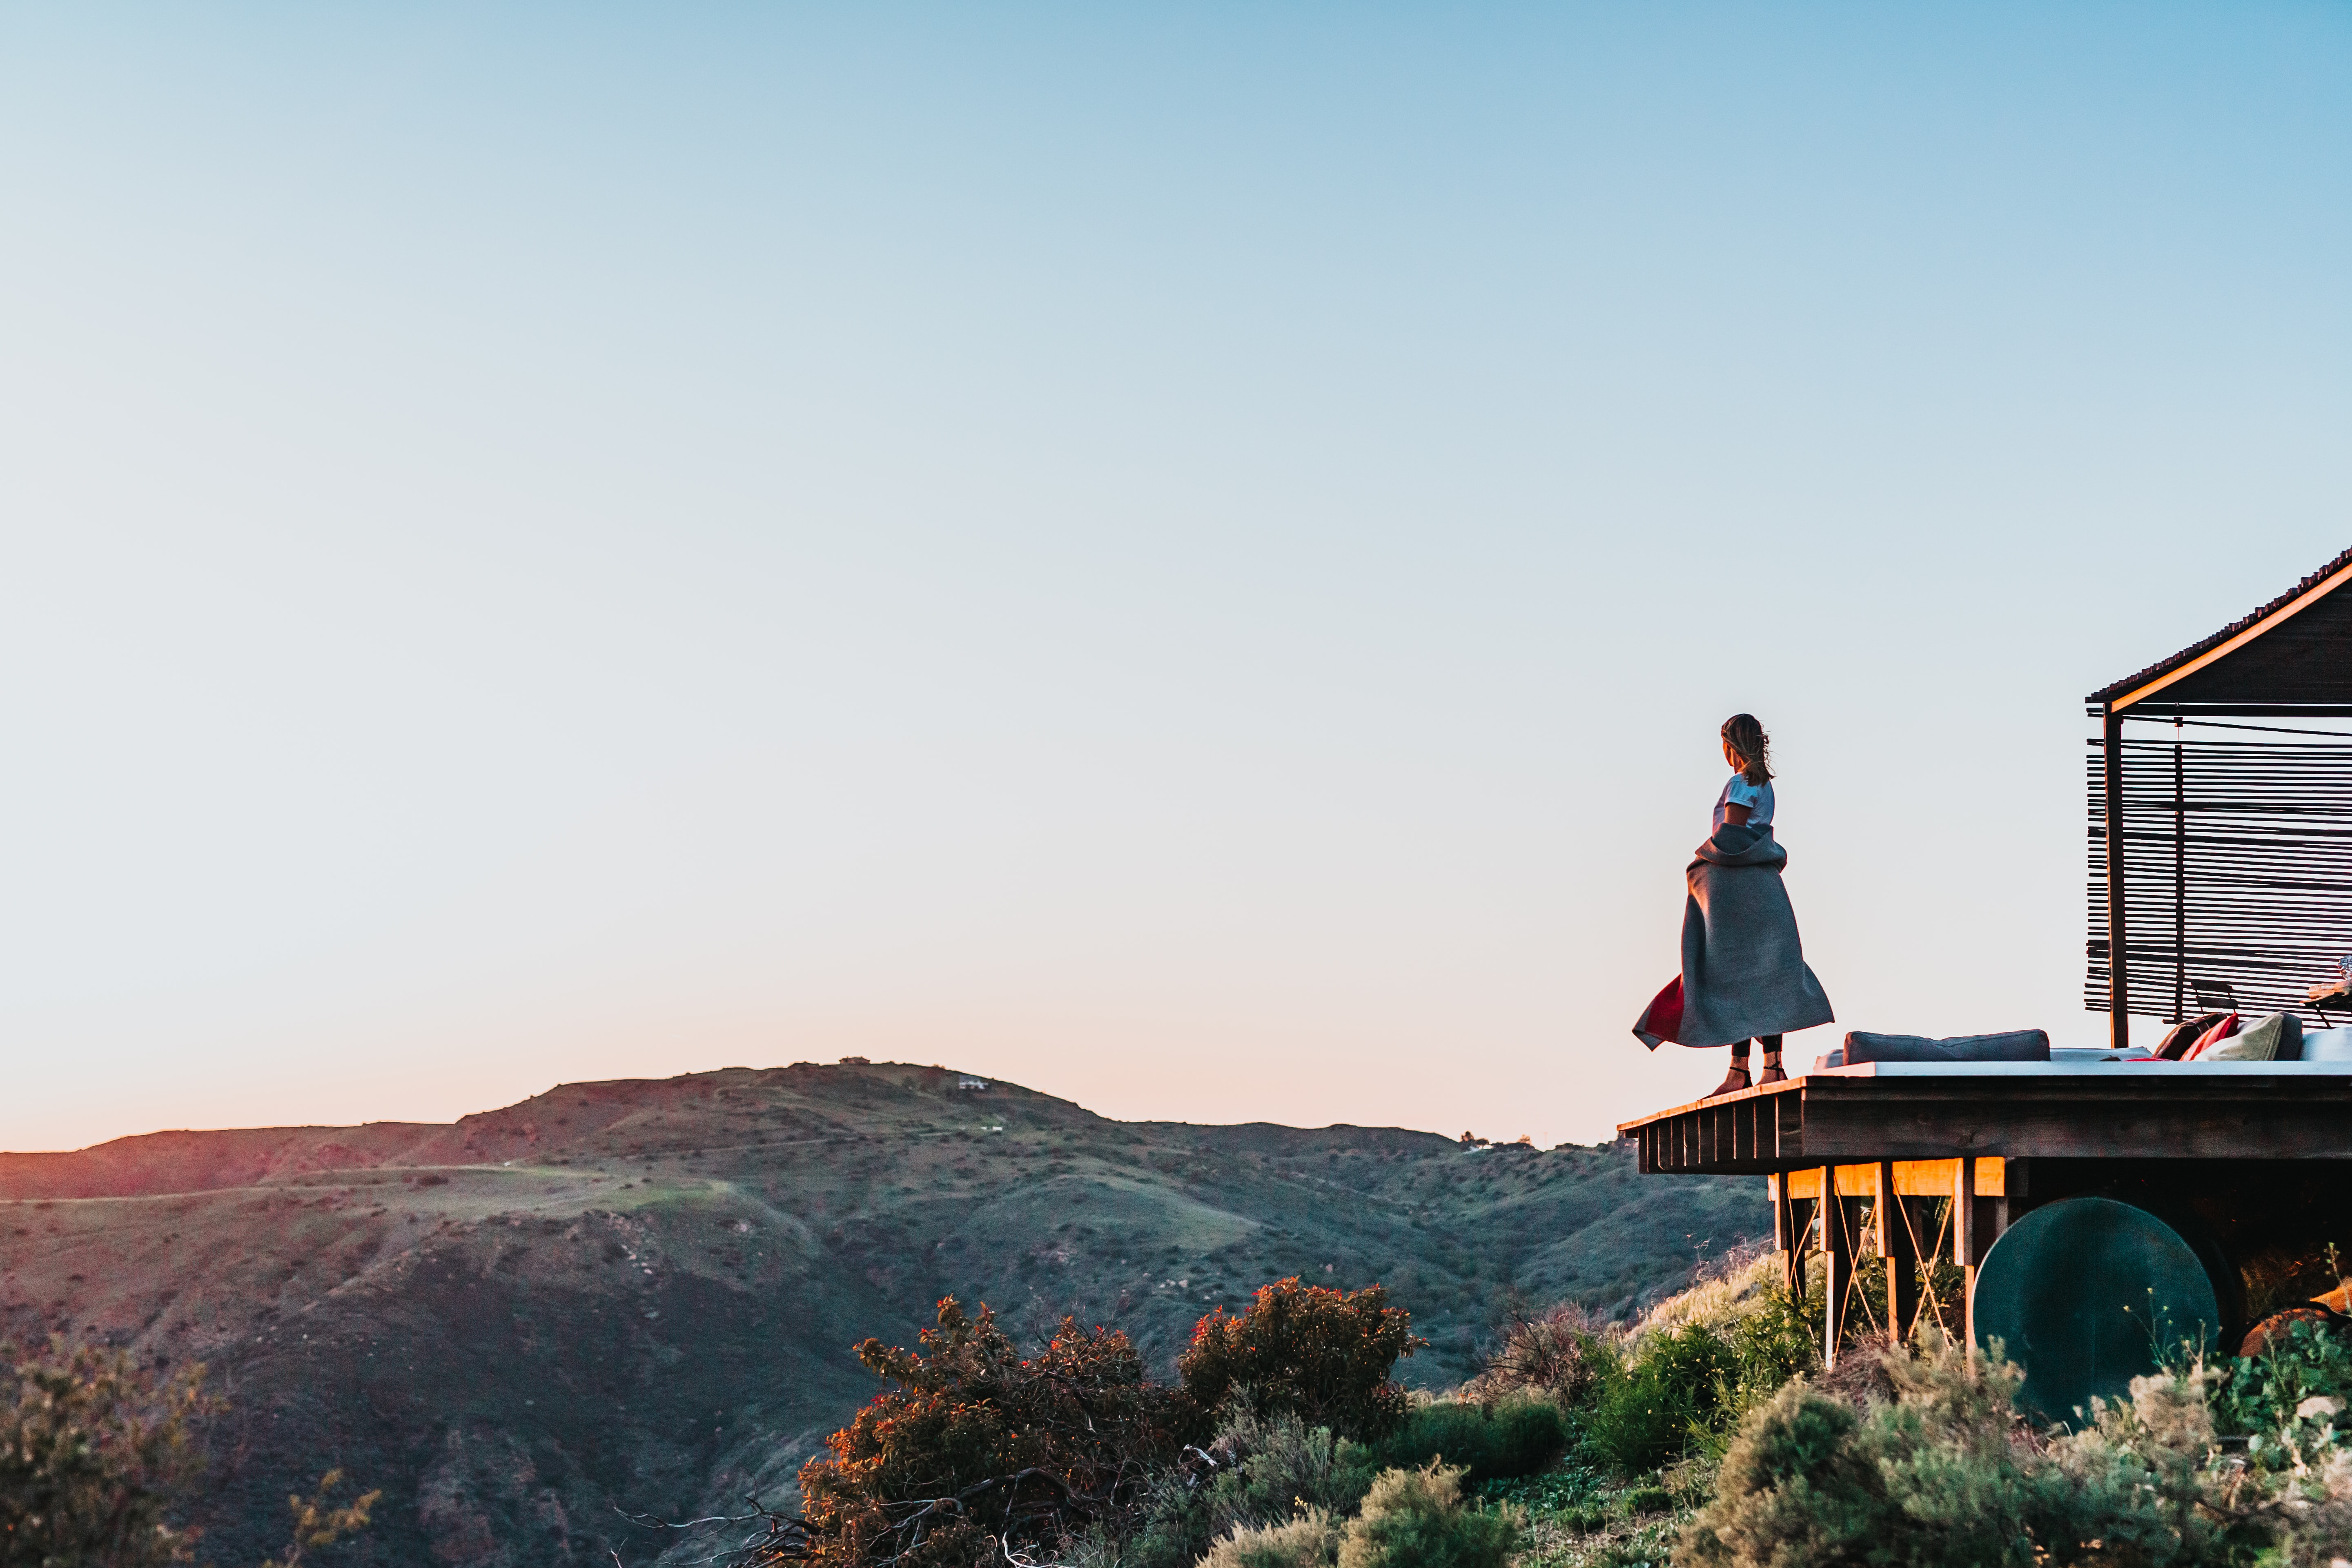 woman standing on brown wooden platform near mountain during daytime